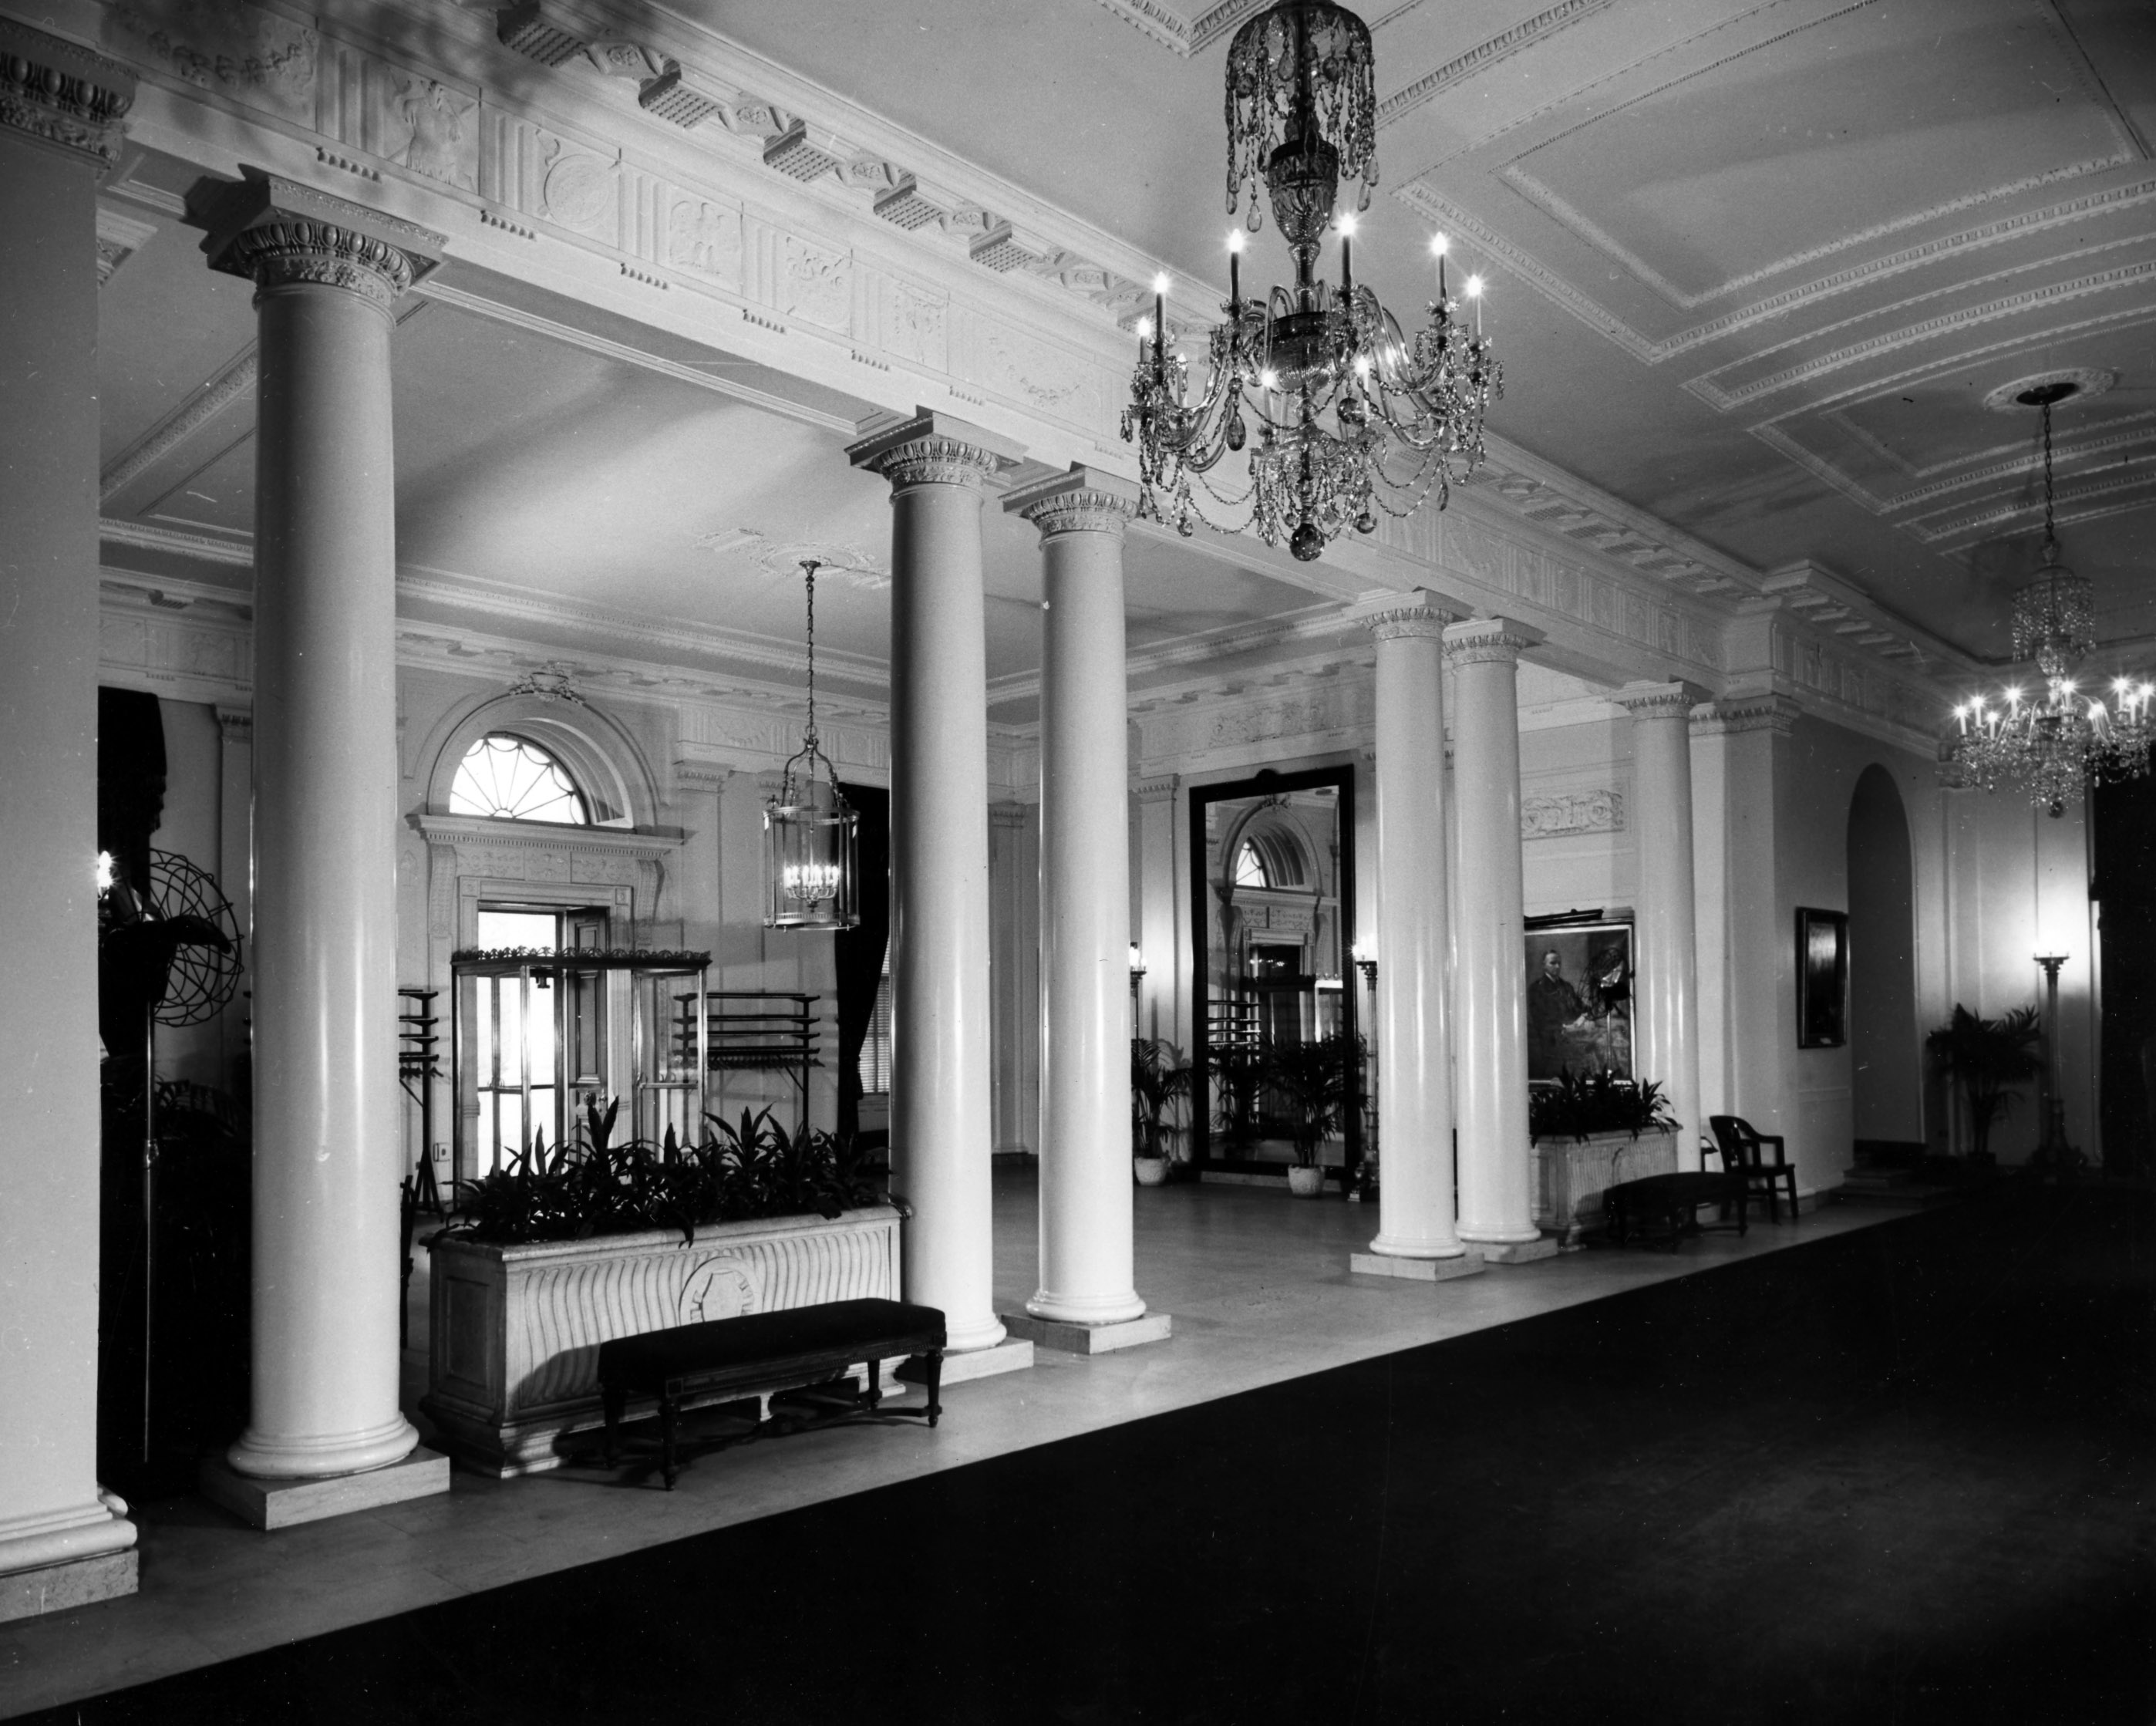 entrance_hall_of_the_white_house-_11-1947